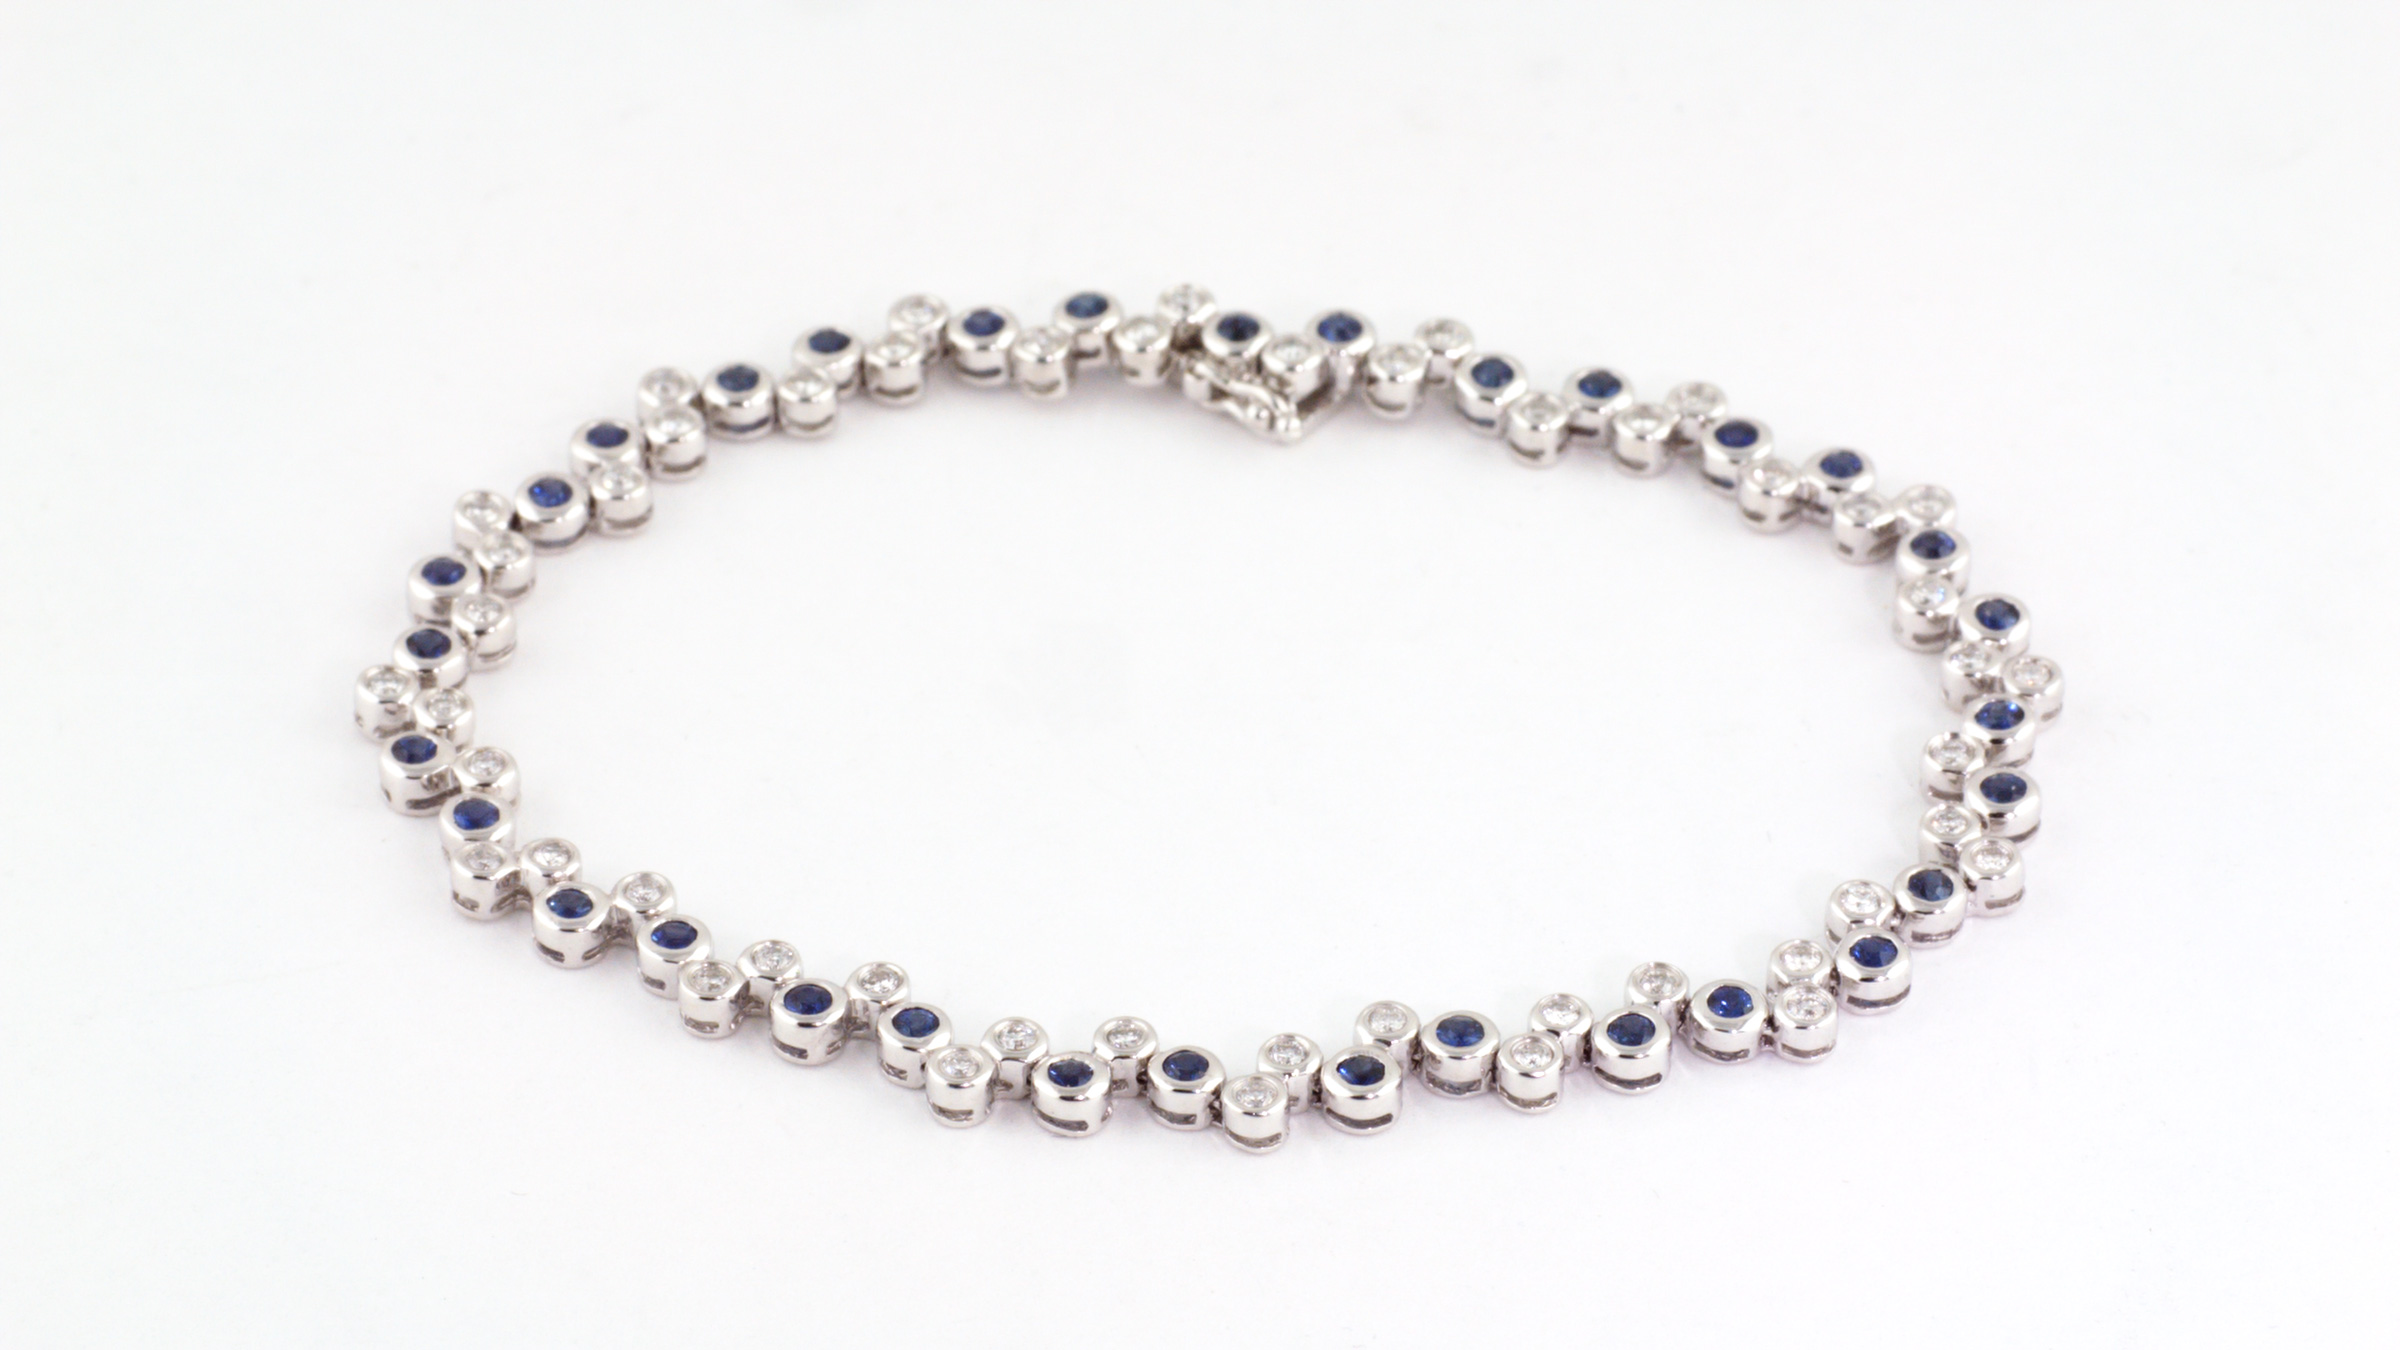 Sapphire and diamond bracelet in 14K white gold.